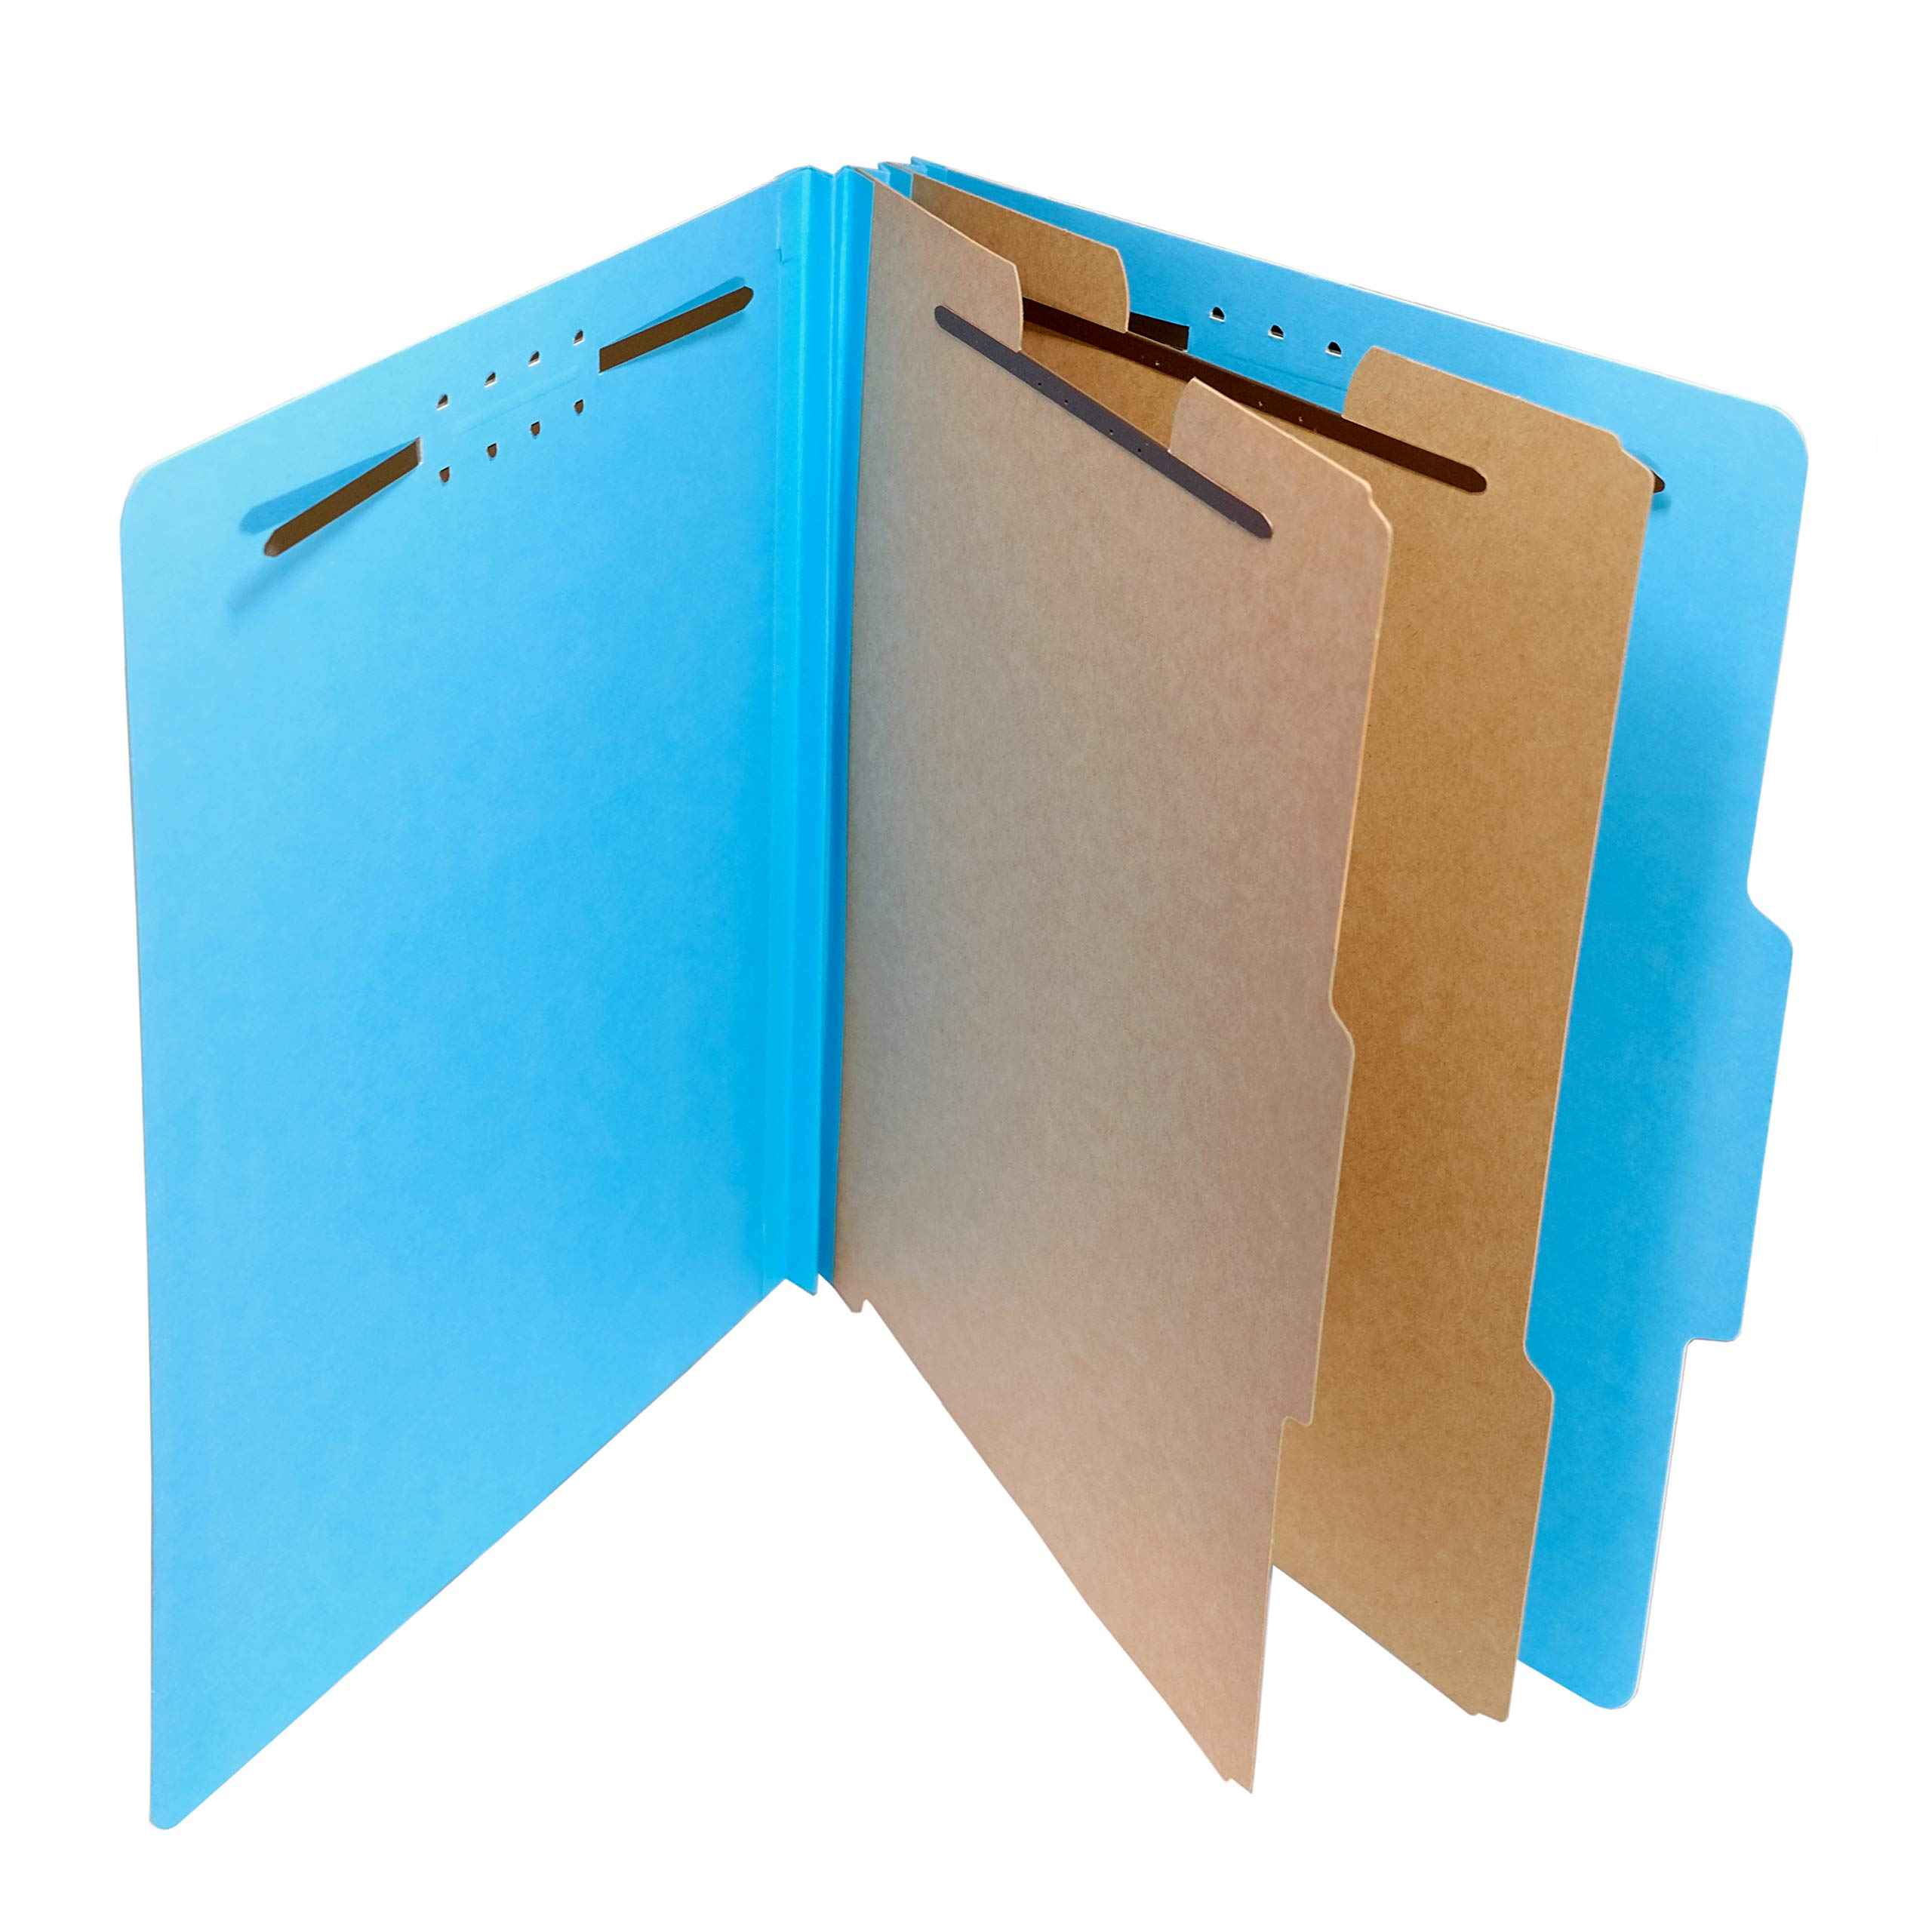 12 iBUY 100% Recycled Pressboard Classification File Folder with Fasteners, 2 Dividers, 2'' Expansion, Letter Size(10.2''x11.8''), Blue, 12-Pack by iBUY Global